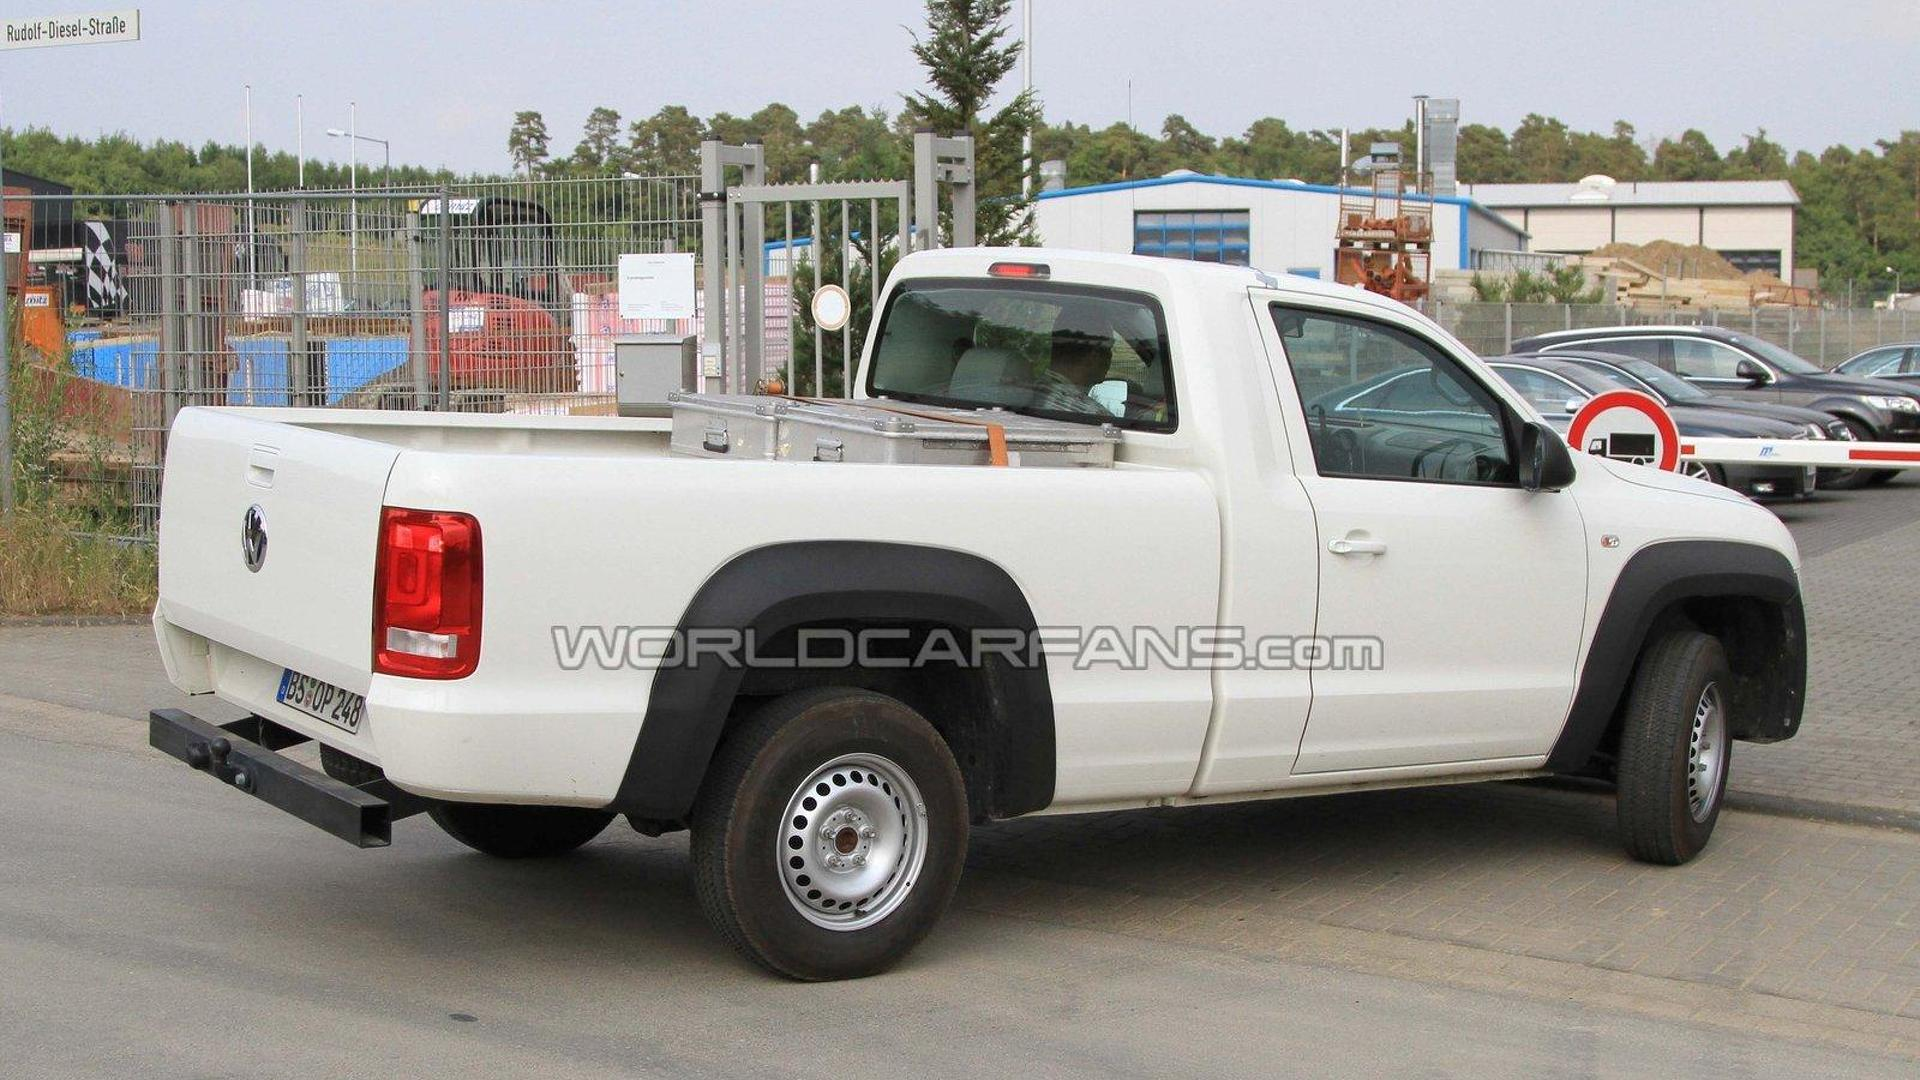 vw amarok goes single cab for 2011 spy photos. Black Bedroom Furniture Sets. Home Design Ideas